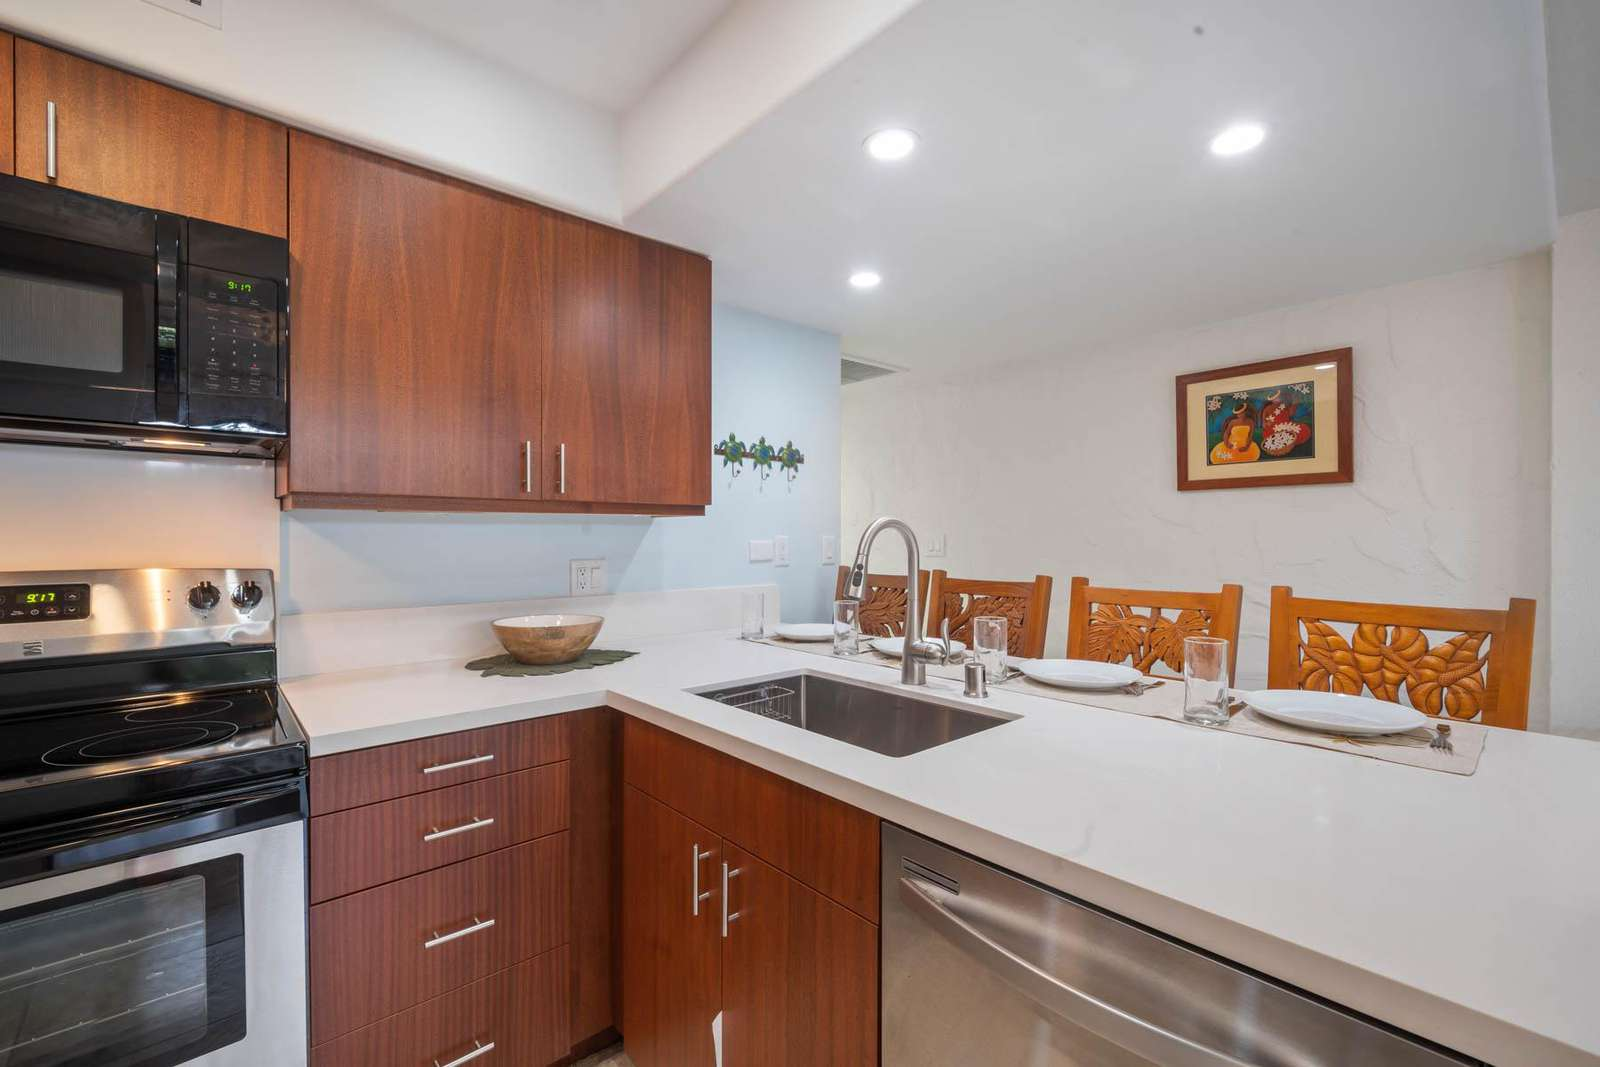 Kitchen with quality appliances.